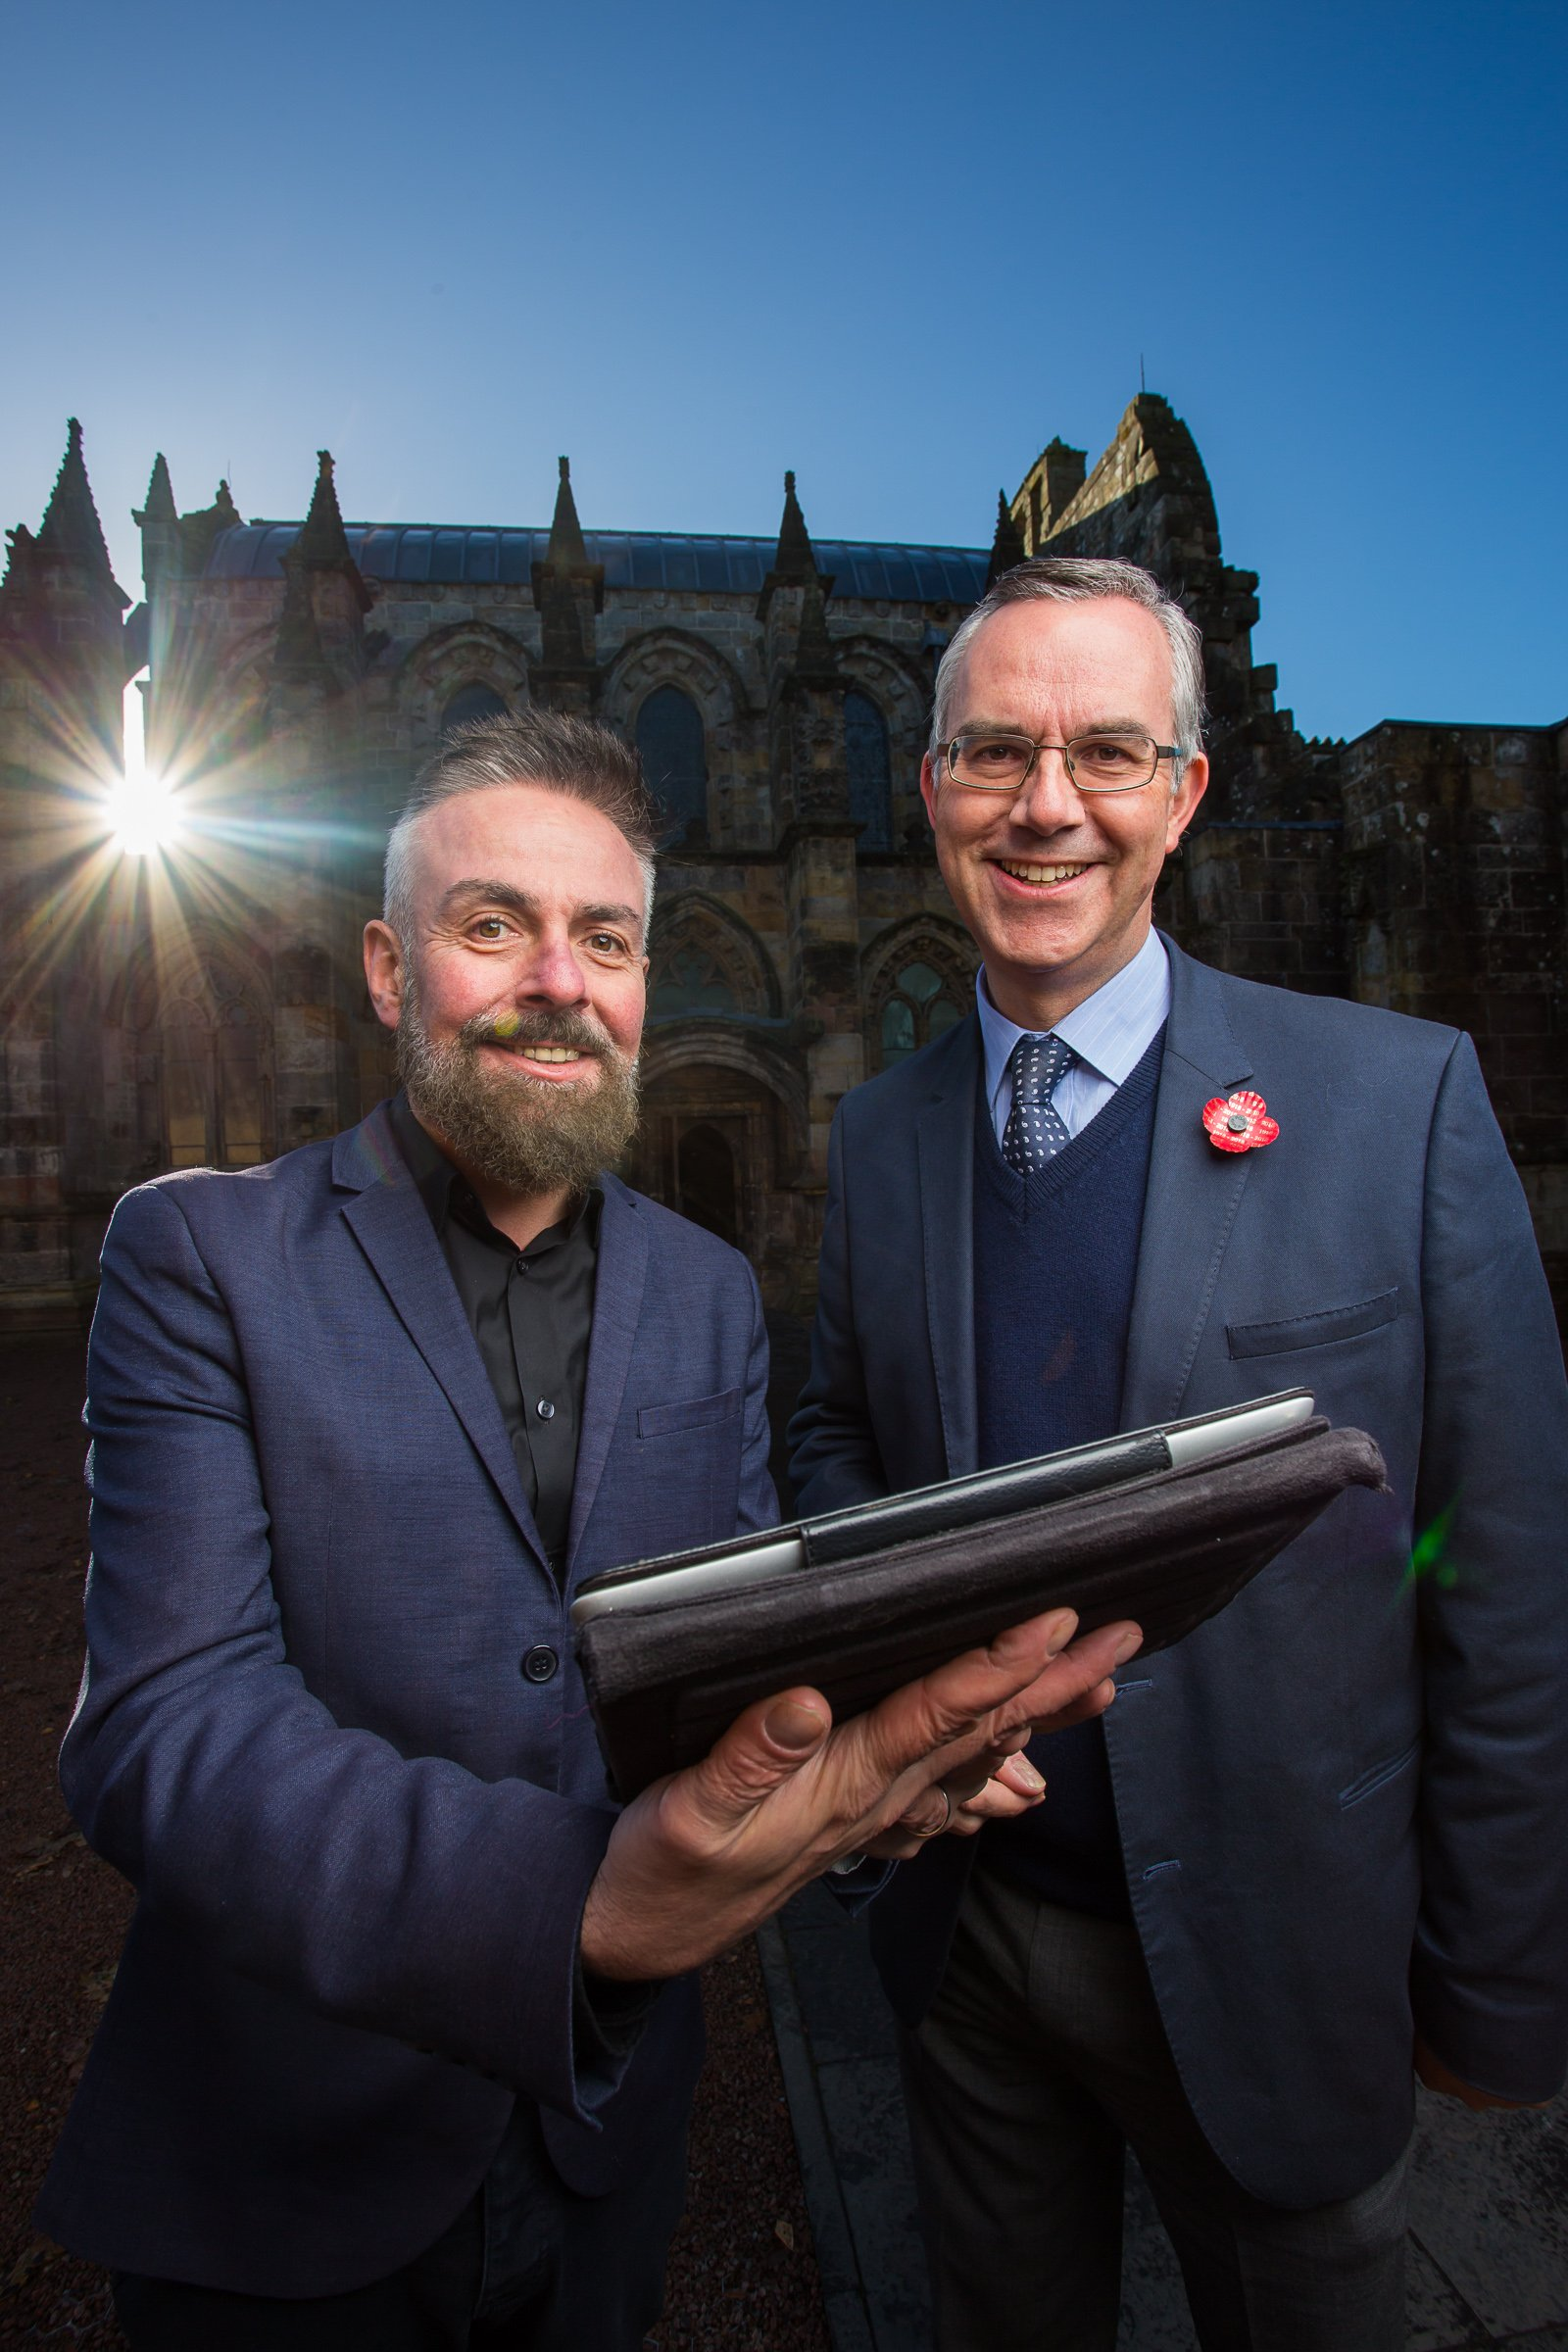 (pictured L-R) Arts & Business Scotland Head of Programmes Carl Watt and Rosslyn Chapel Trust Director Ian Gardner review the new digital toolkit website in front of historic Rosslyn Chapel in Midlothian.